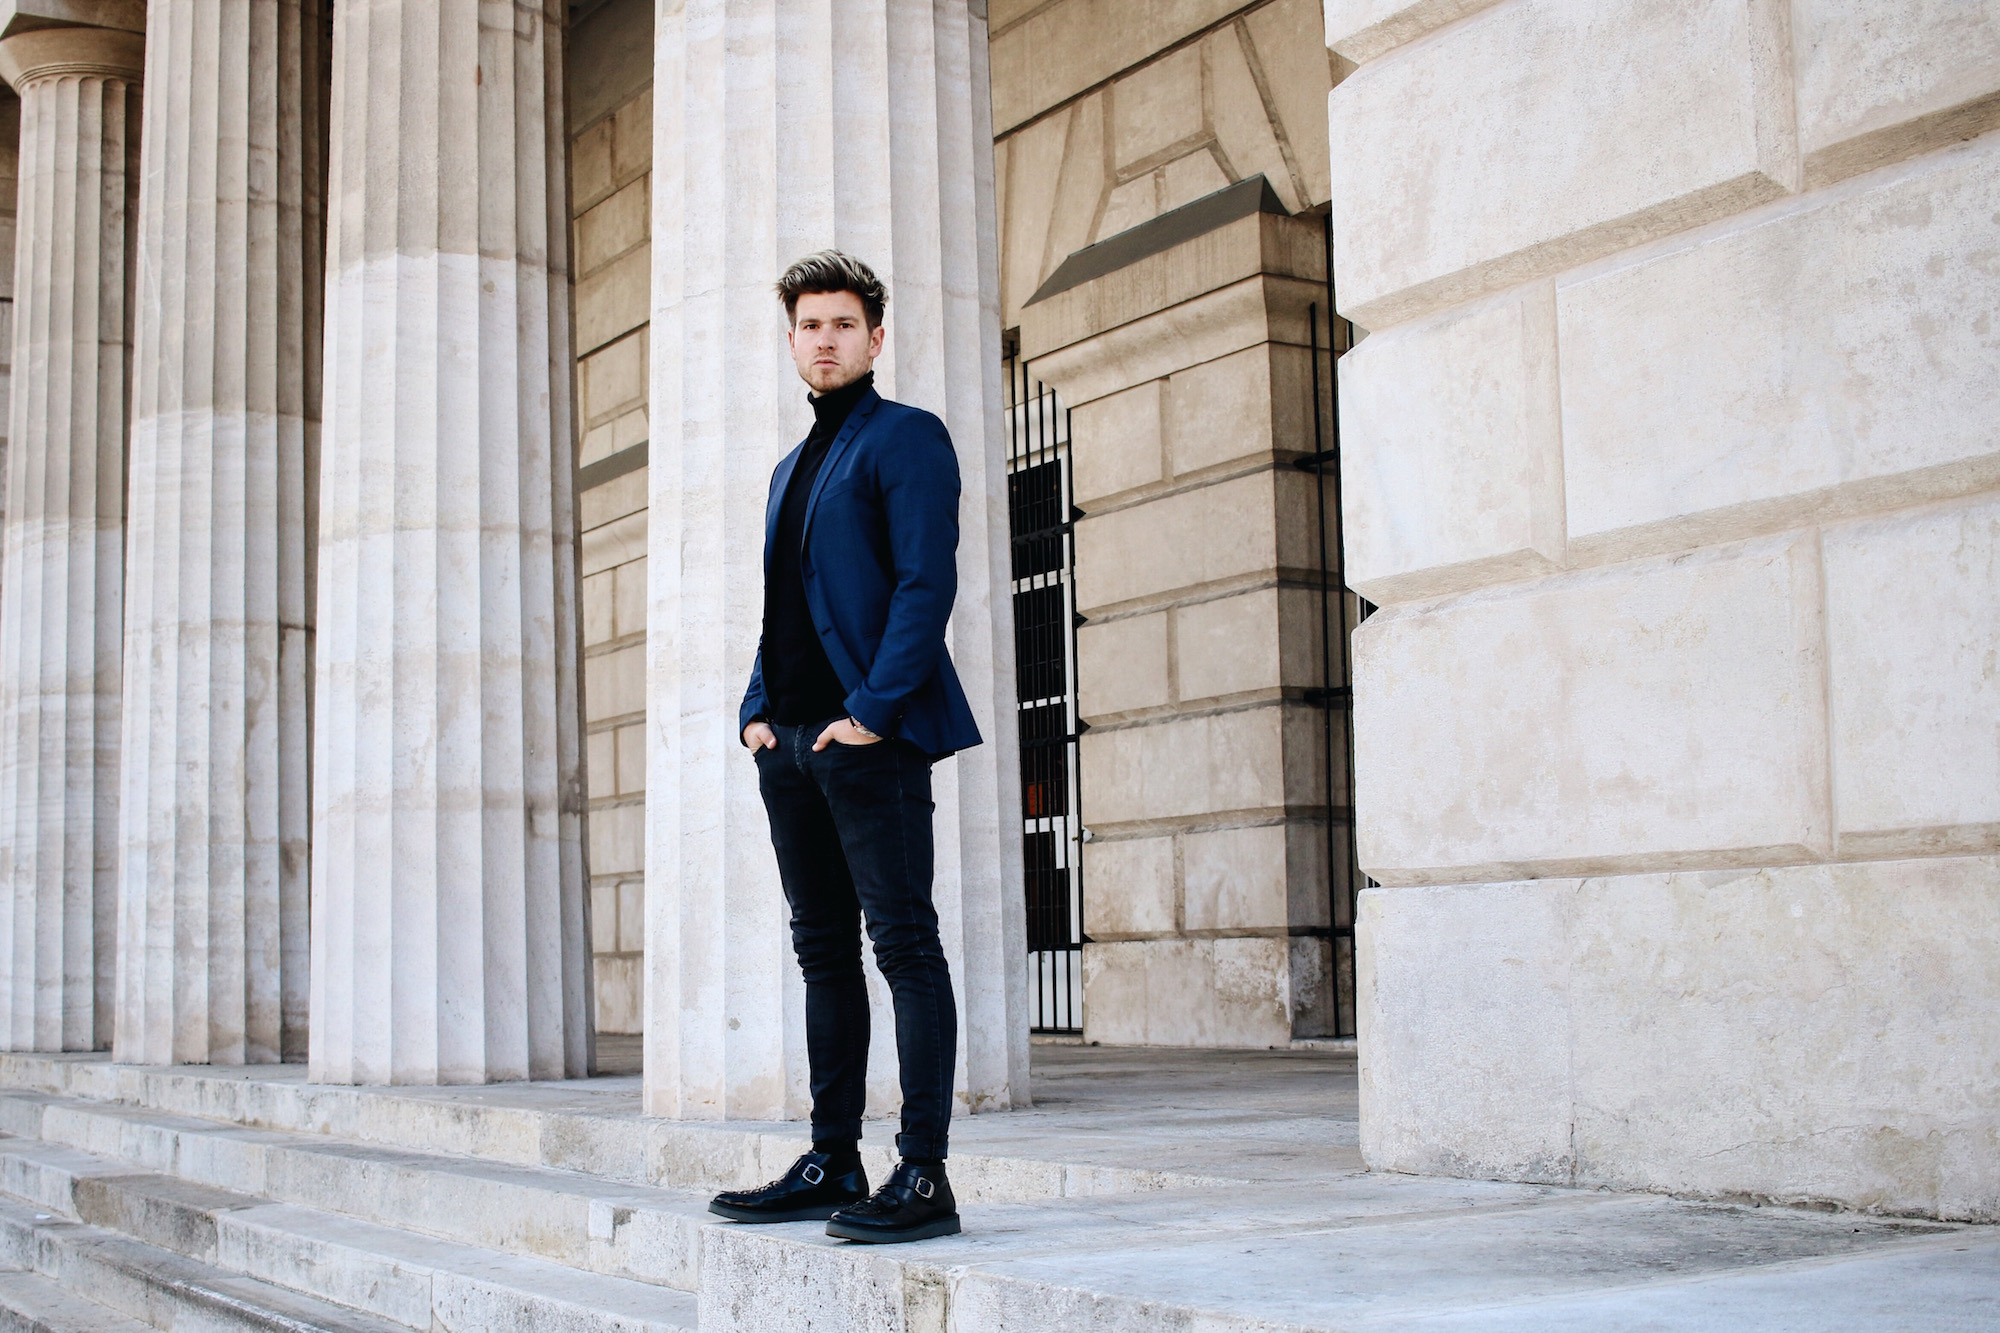 Tiger-Of-Sweden-Suit-Mix-Match_Three-ways-to-wear-a-suit_Meanwhile-in-Awesometown_Austrian-Mens-Fashion-and-Lifestyle-Blogger16